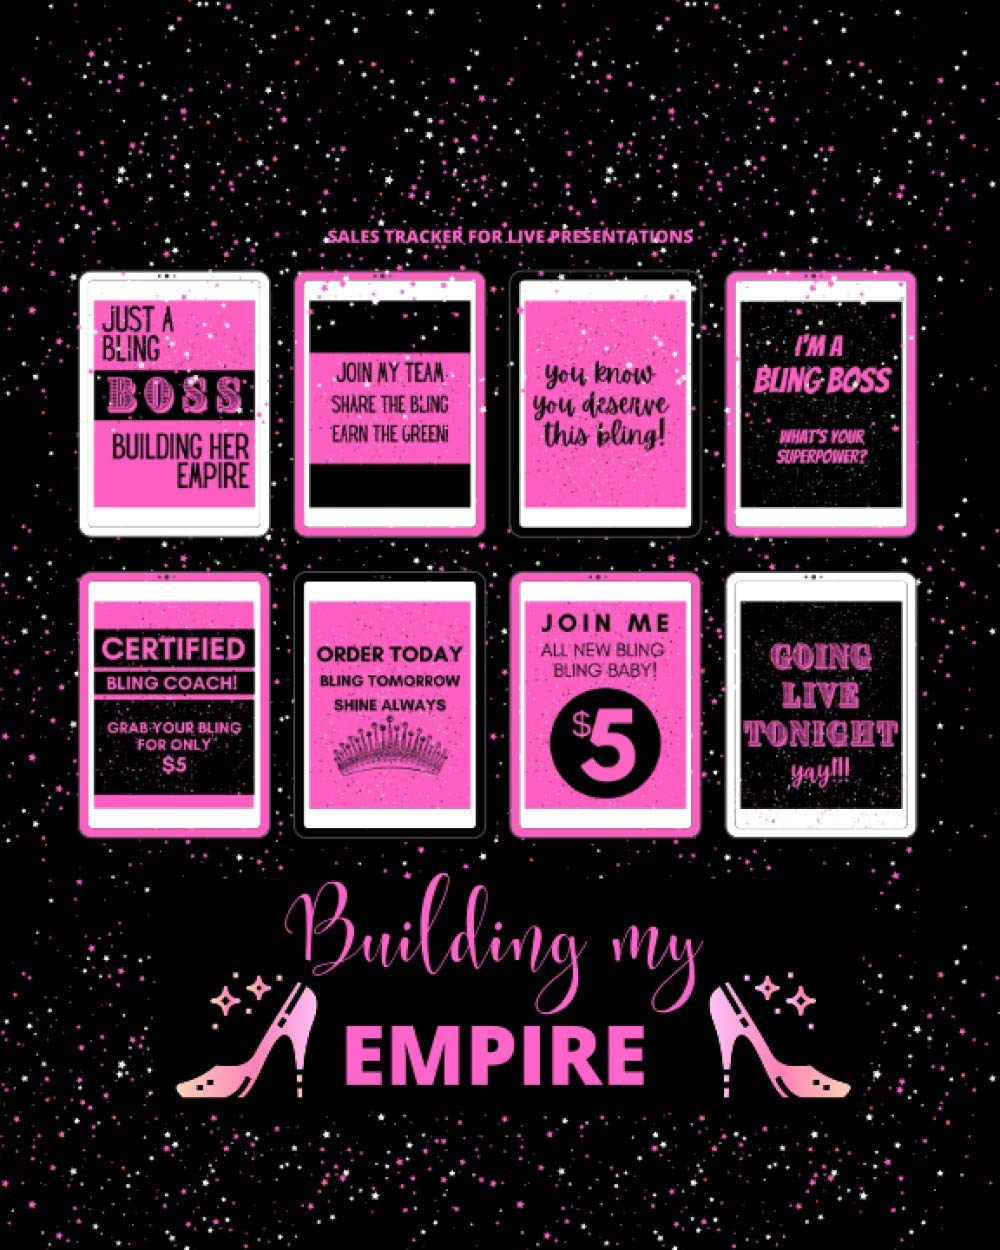 BUILDING MY EMPIRE:  JEWELRY BLING BLING SALES TRACKER JOURNAL NOTEBOOK FOR LIVE PRESENTATIONS PAPARAZZI ACCESSORIES SUPPLIES AND MORE